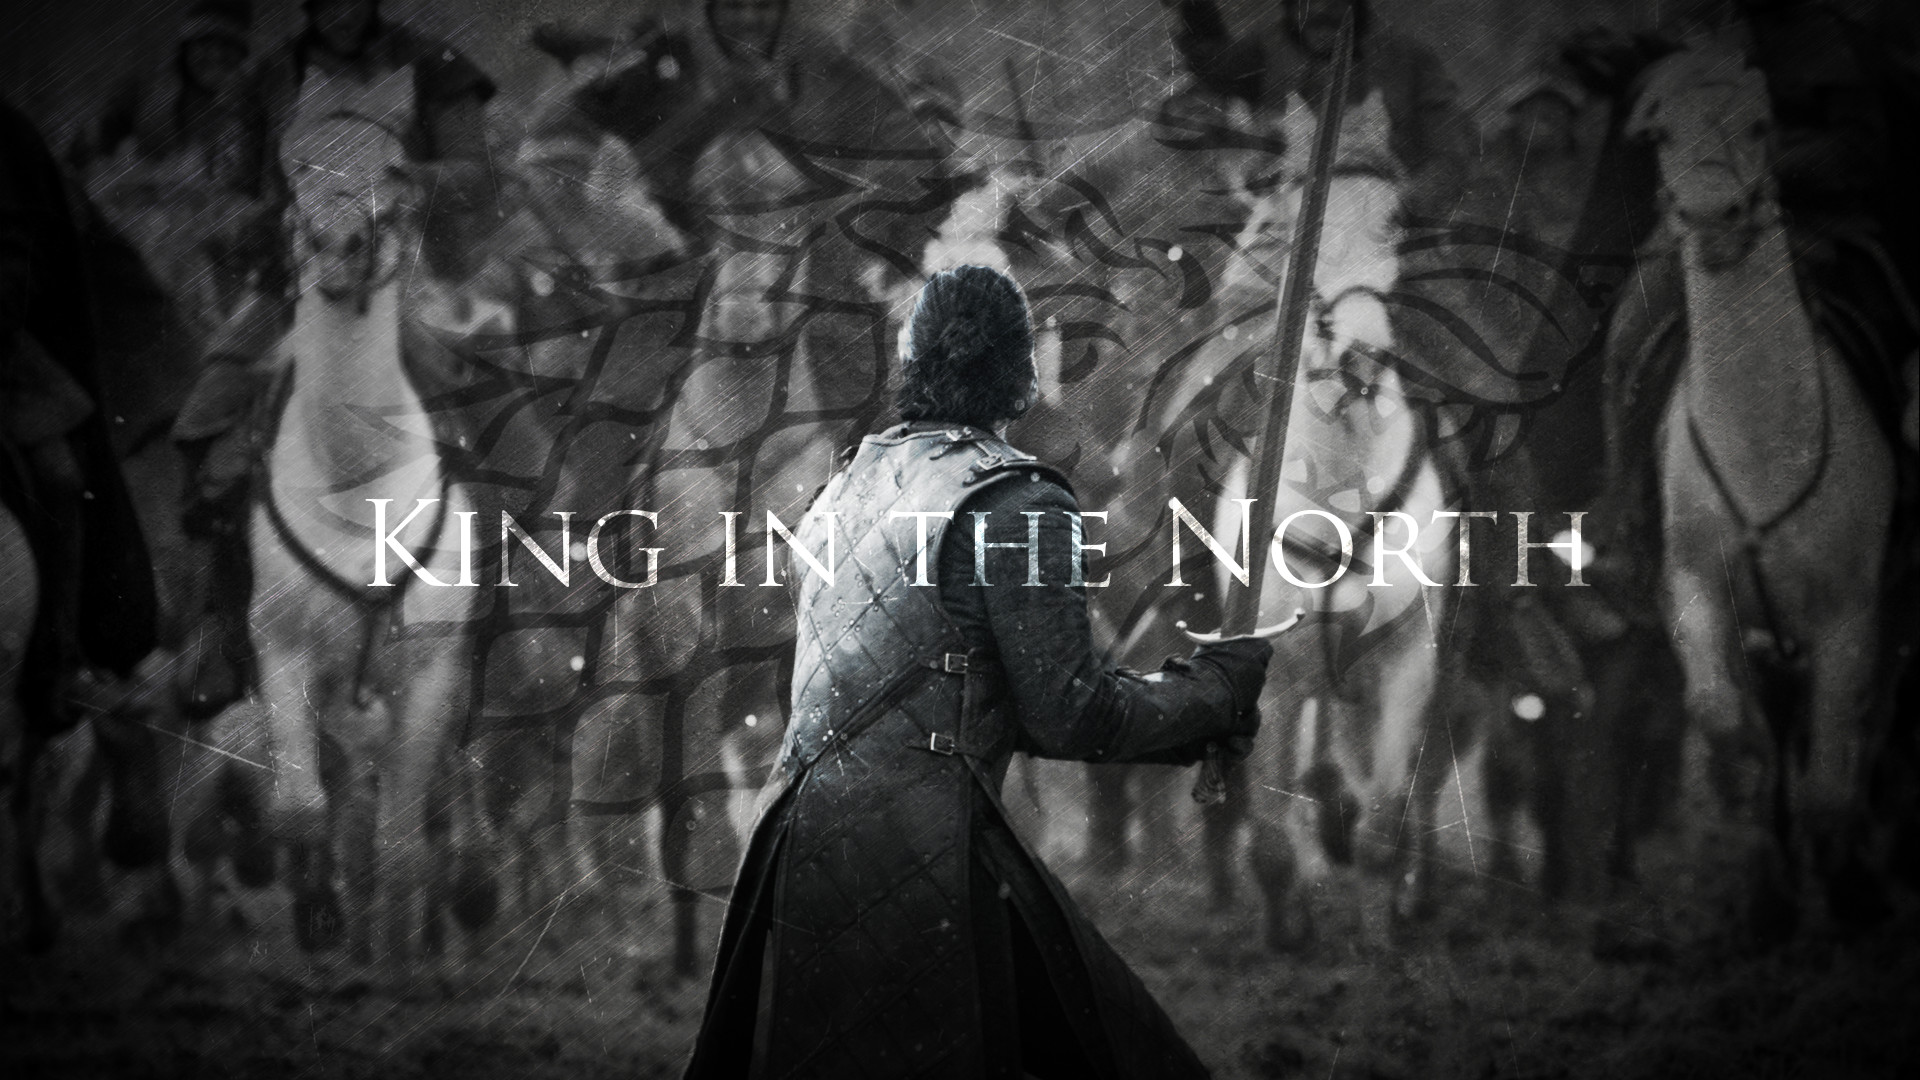 1920x1080 ... King in the North | Jon Snow | Game of Thrones by TaigaLife